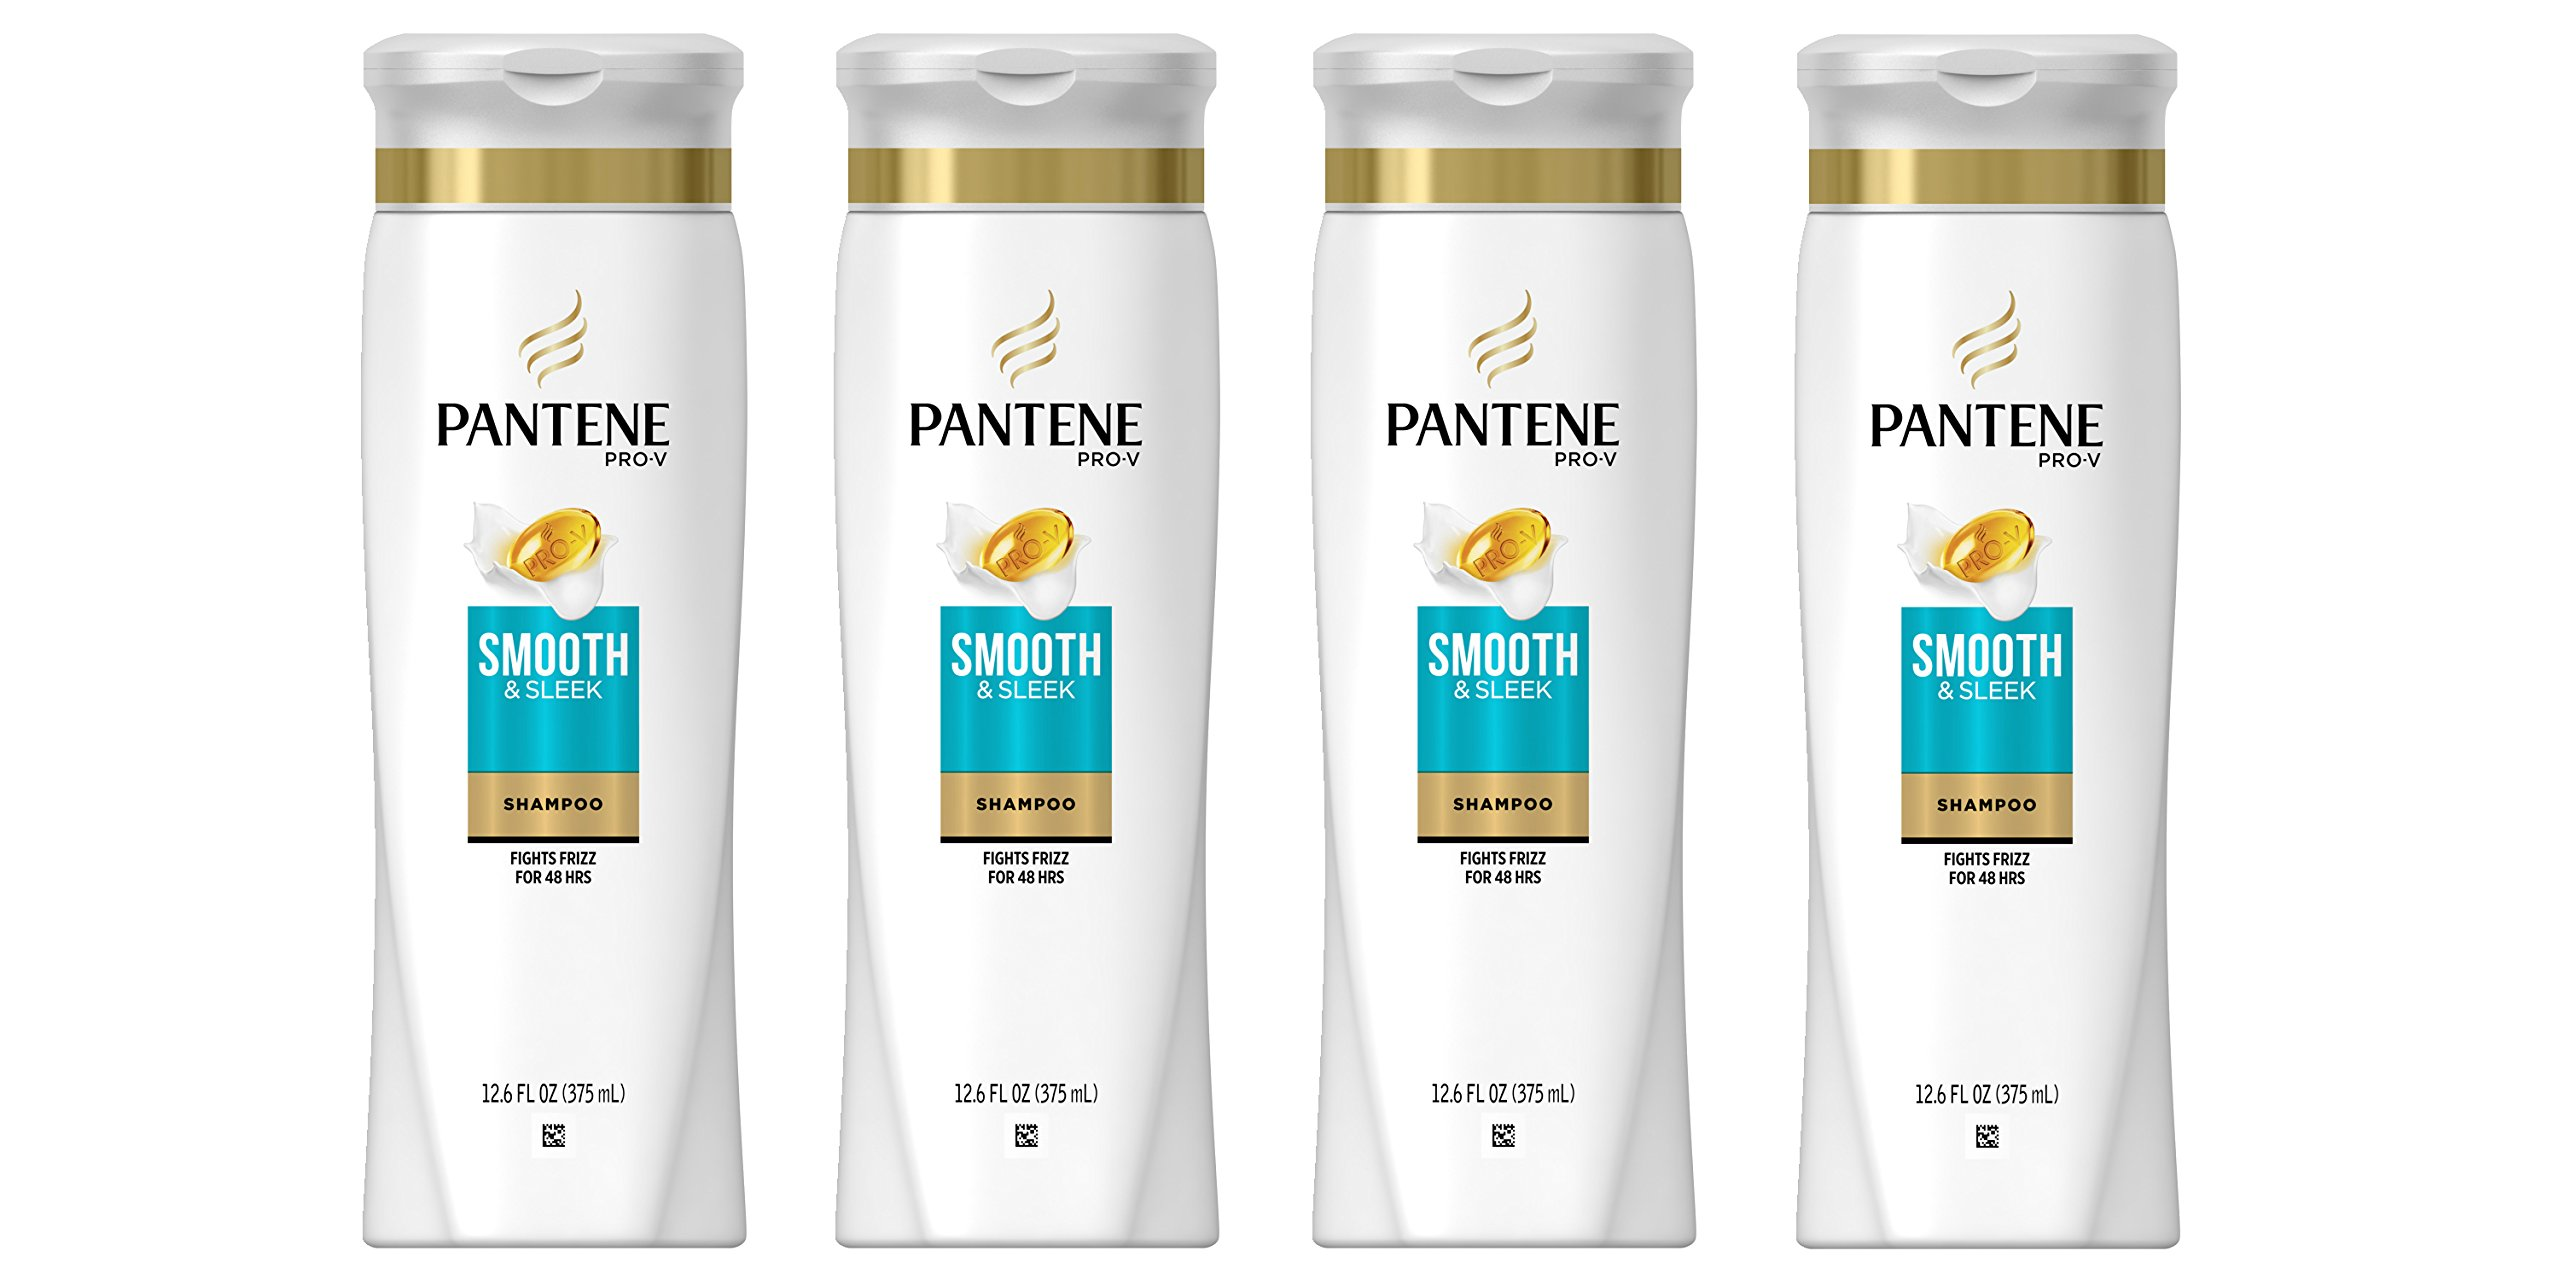 Pantene Pro-V Smooth & Sleek by Pantene